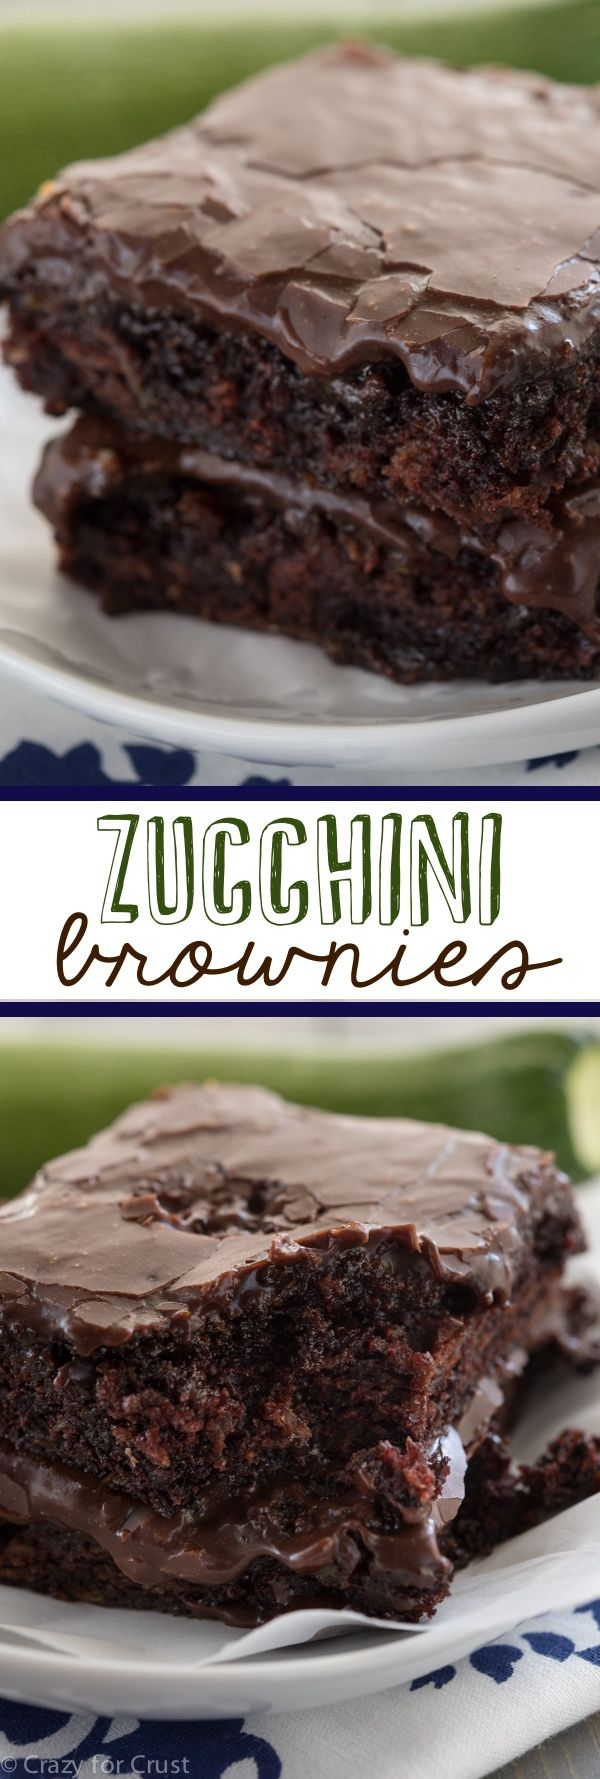 Zucchini Brownies – the easiest recipe for the most gooey, chocolaty, fudgy brownies full of zucchini! And NO ONE will guess!